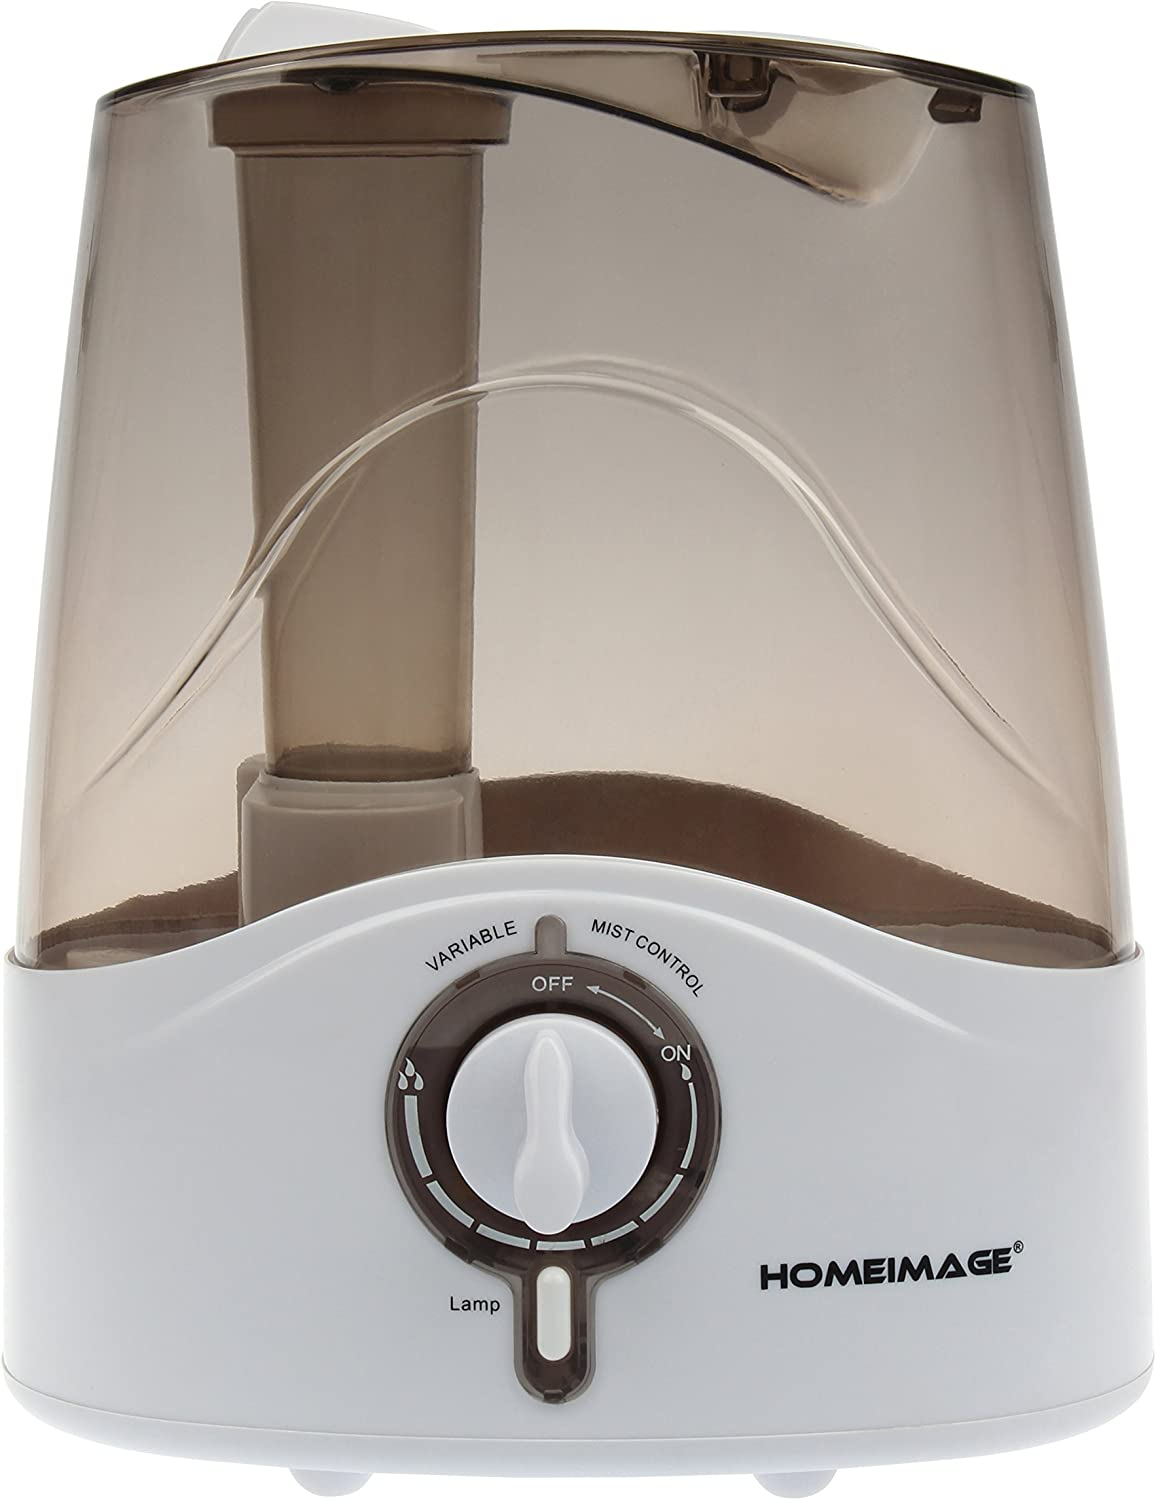 HOMEIMAGE 1.5 Gallons Output Max 87% OFF per Ta Large day 4.5L 1.19Gallon San Diego Mall